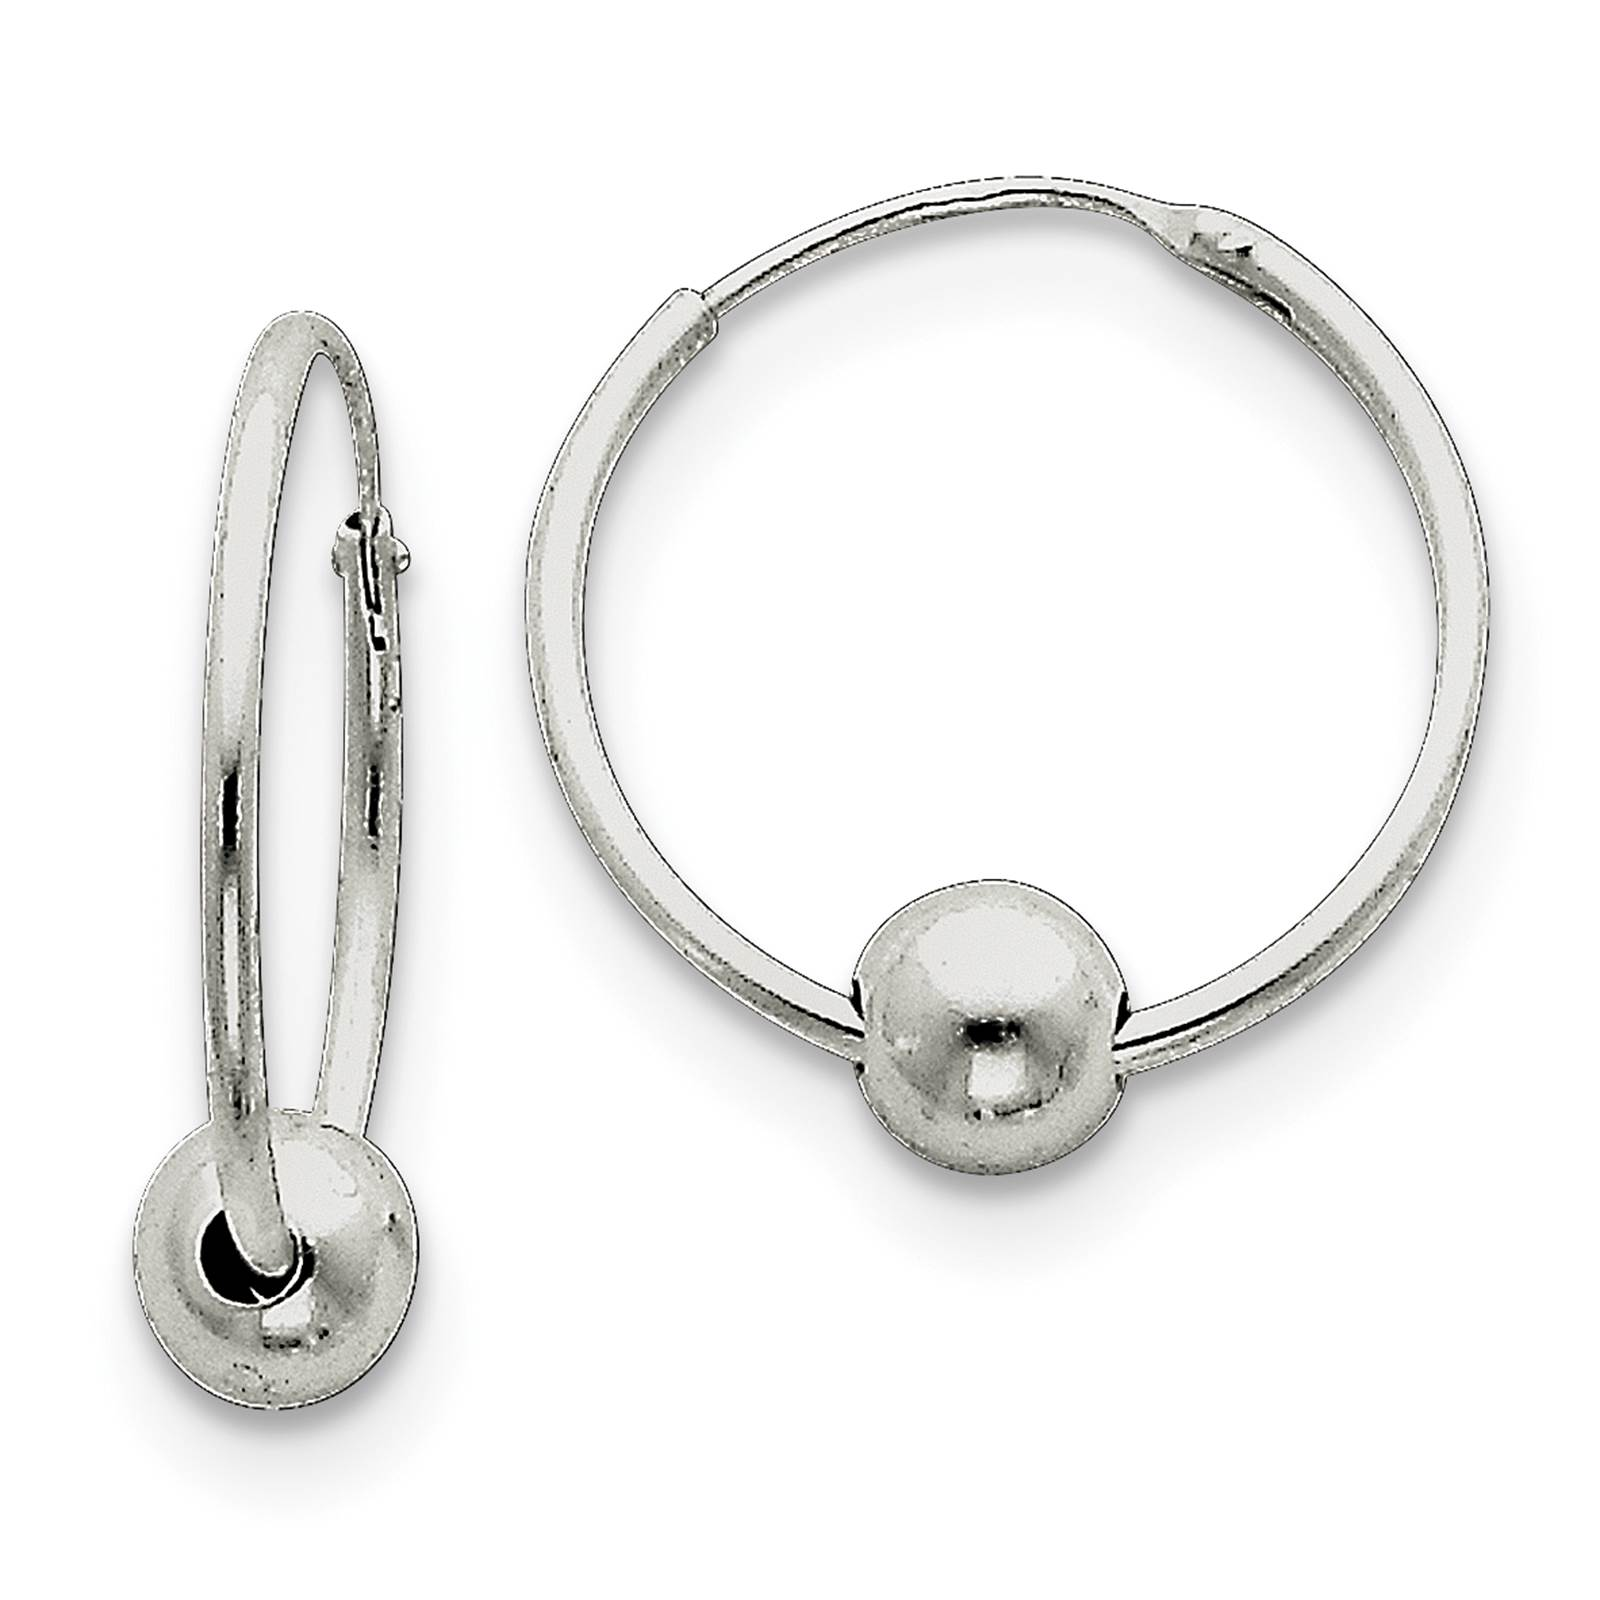 925 Sterling Silver 1.5mm x 22mm Bead Polished Endless Hoop Earrings